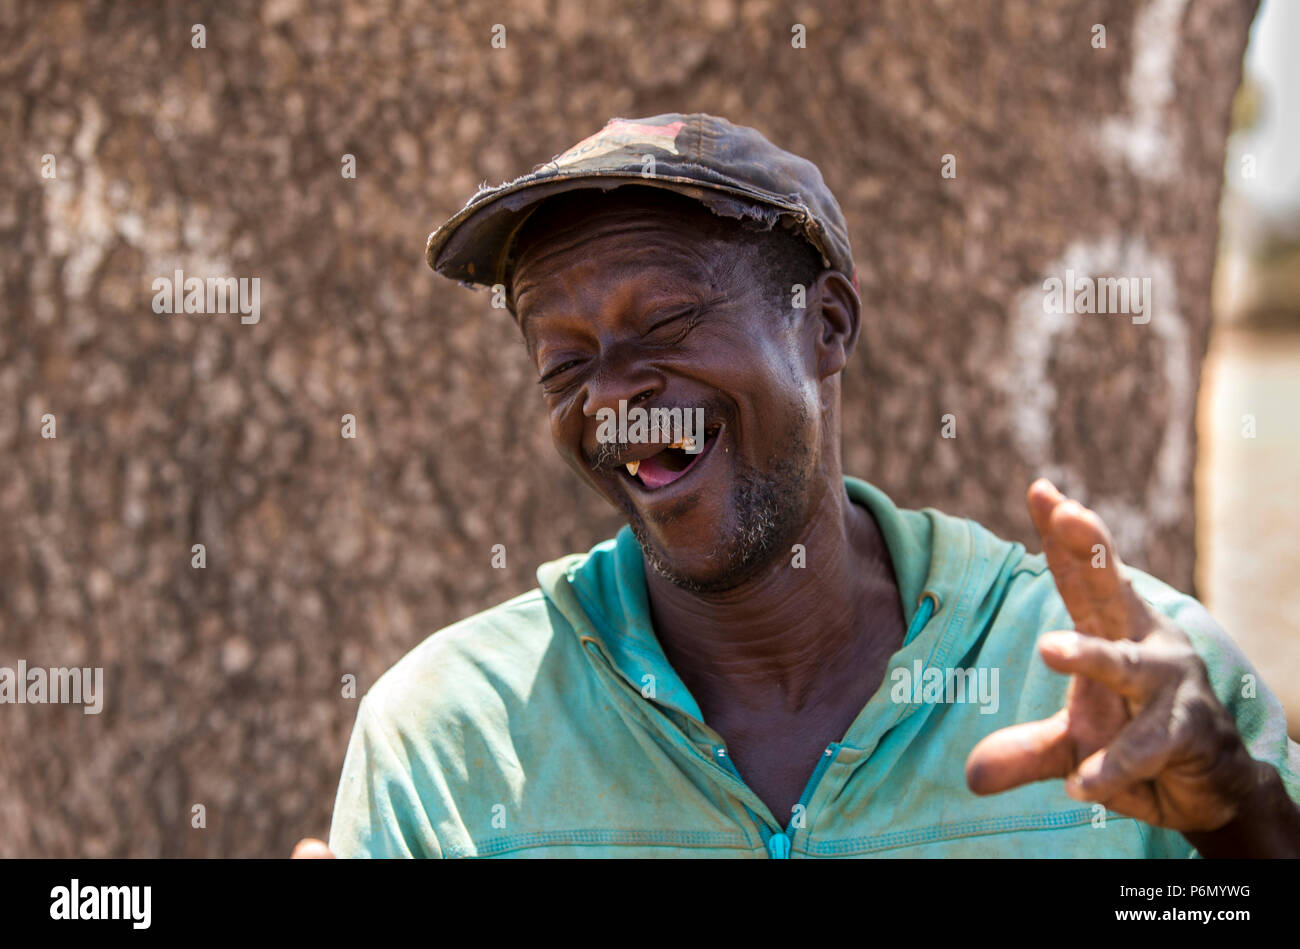 Smiling Togolese with missing teeth. - Stock Image